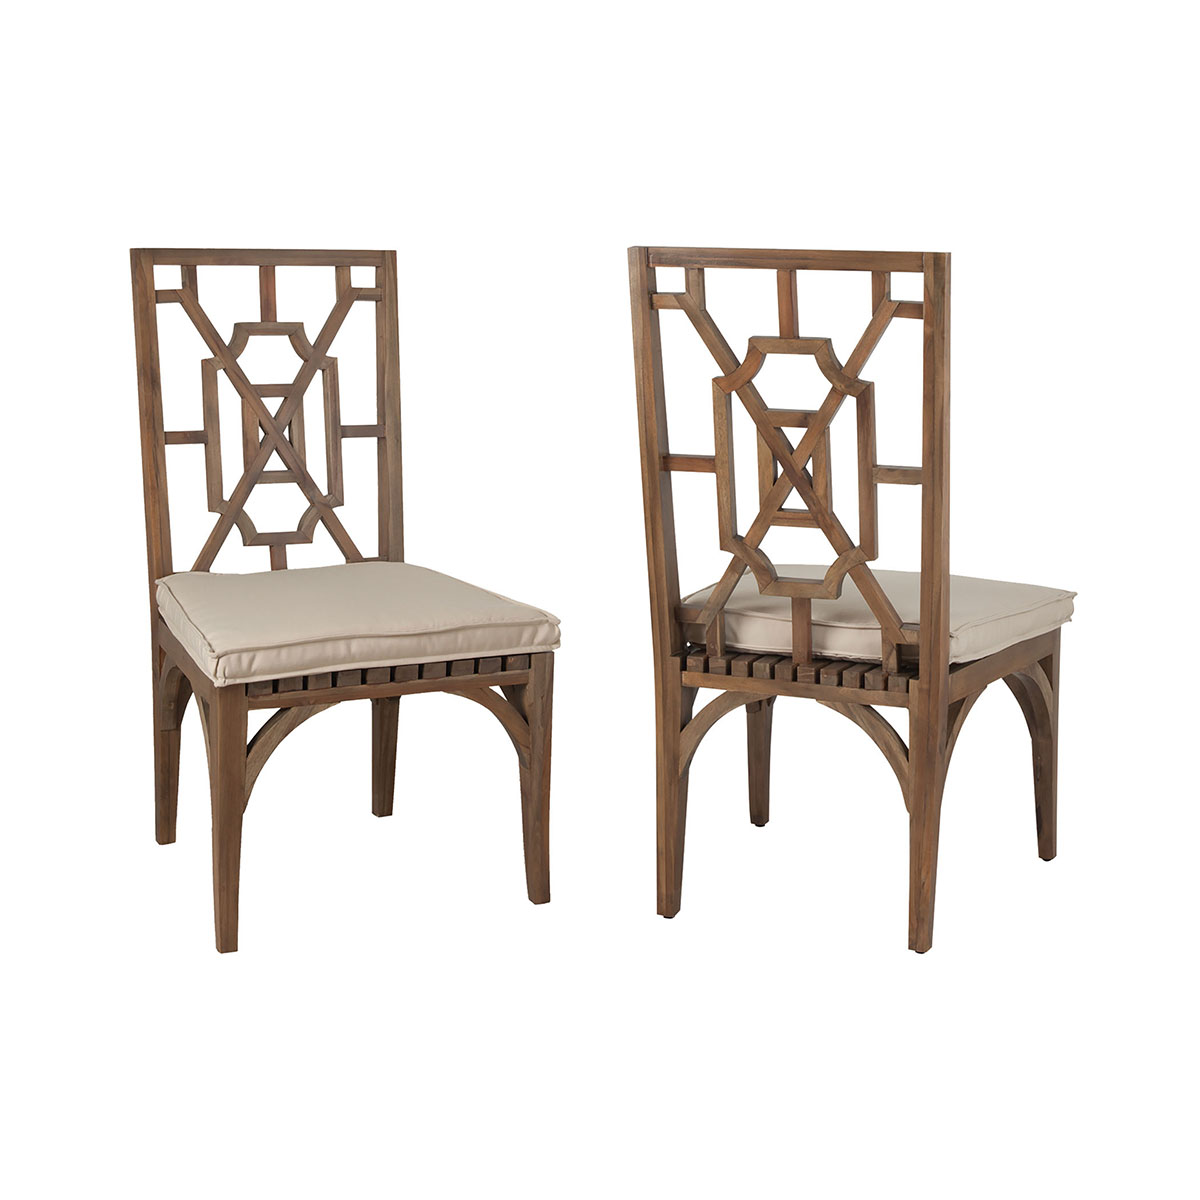 Teak Patio Dining Chairs in Burnt Umber Set of 2 6917010P-BU | ELK Home